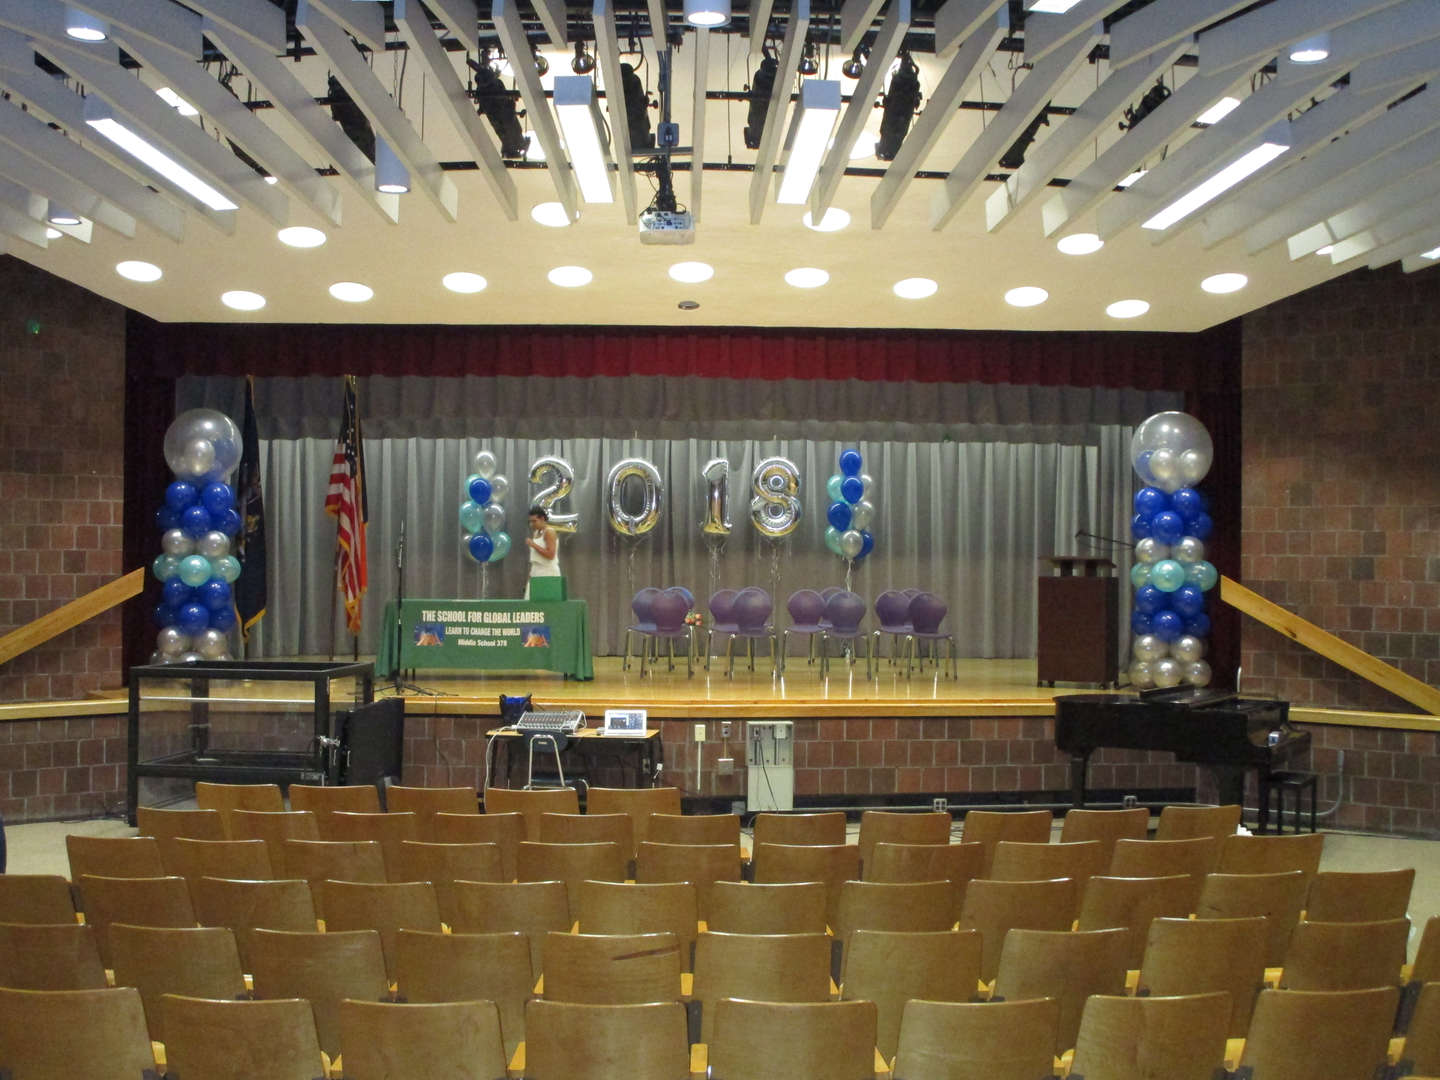 Auditorium stage set for a graduation